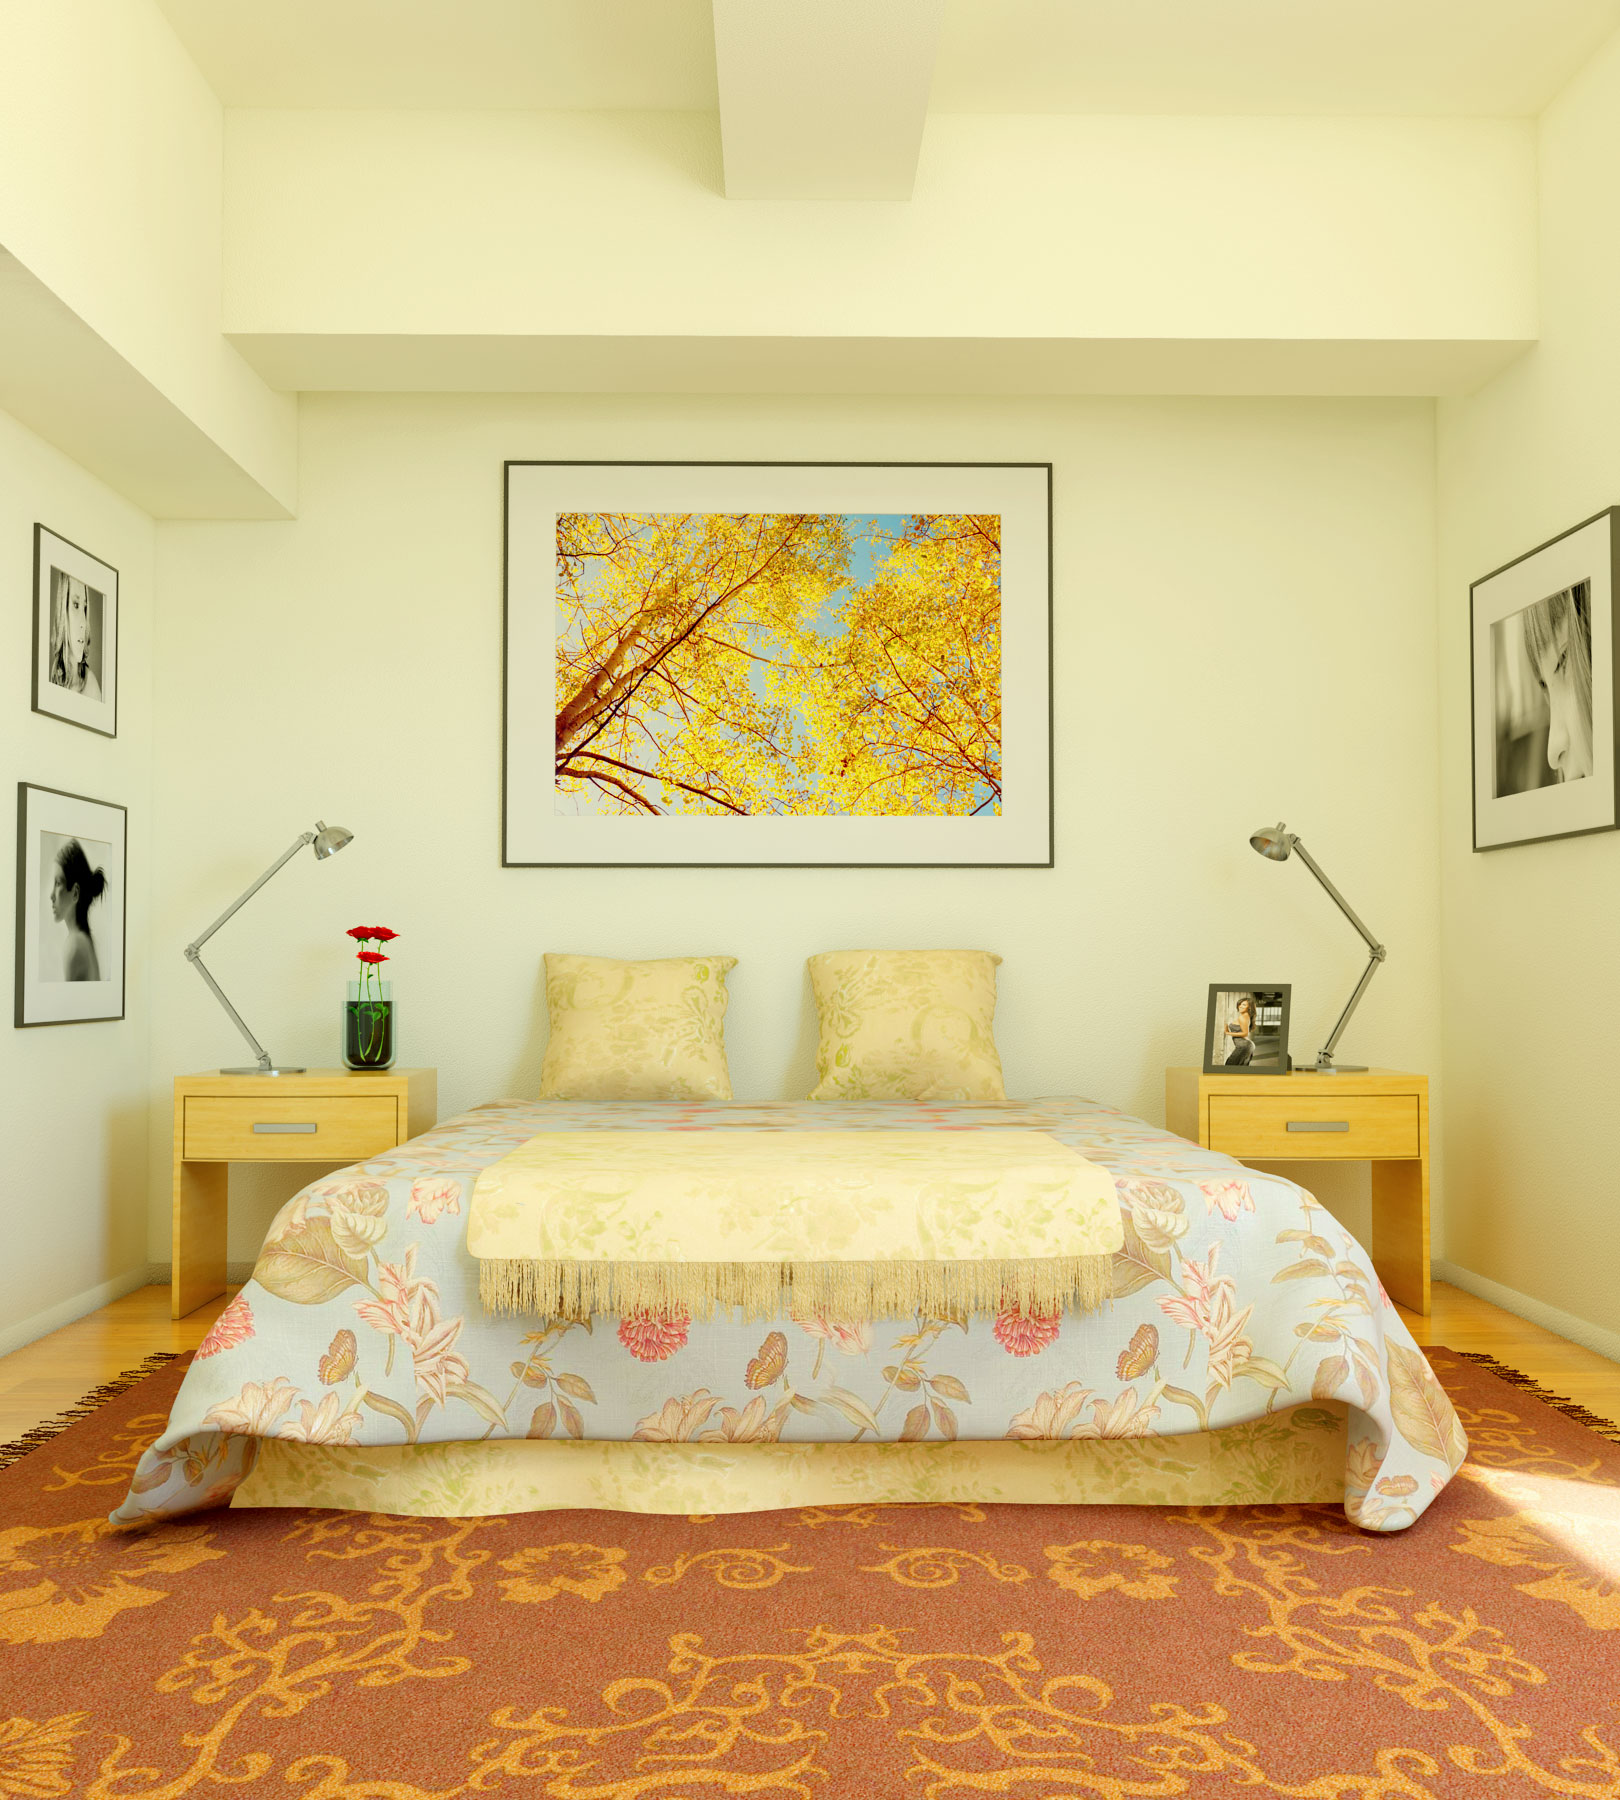 Interior Exterior Plan | Uncomplicated Bedroom Style in a ... on Beautiful Small Room  id=83814